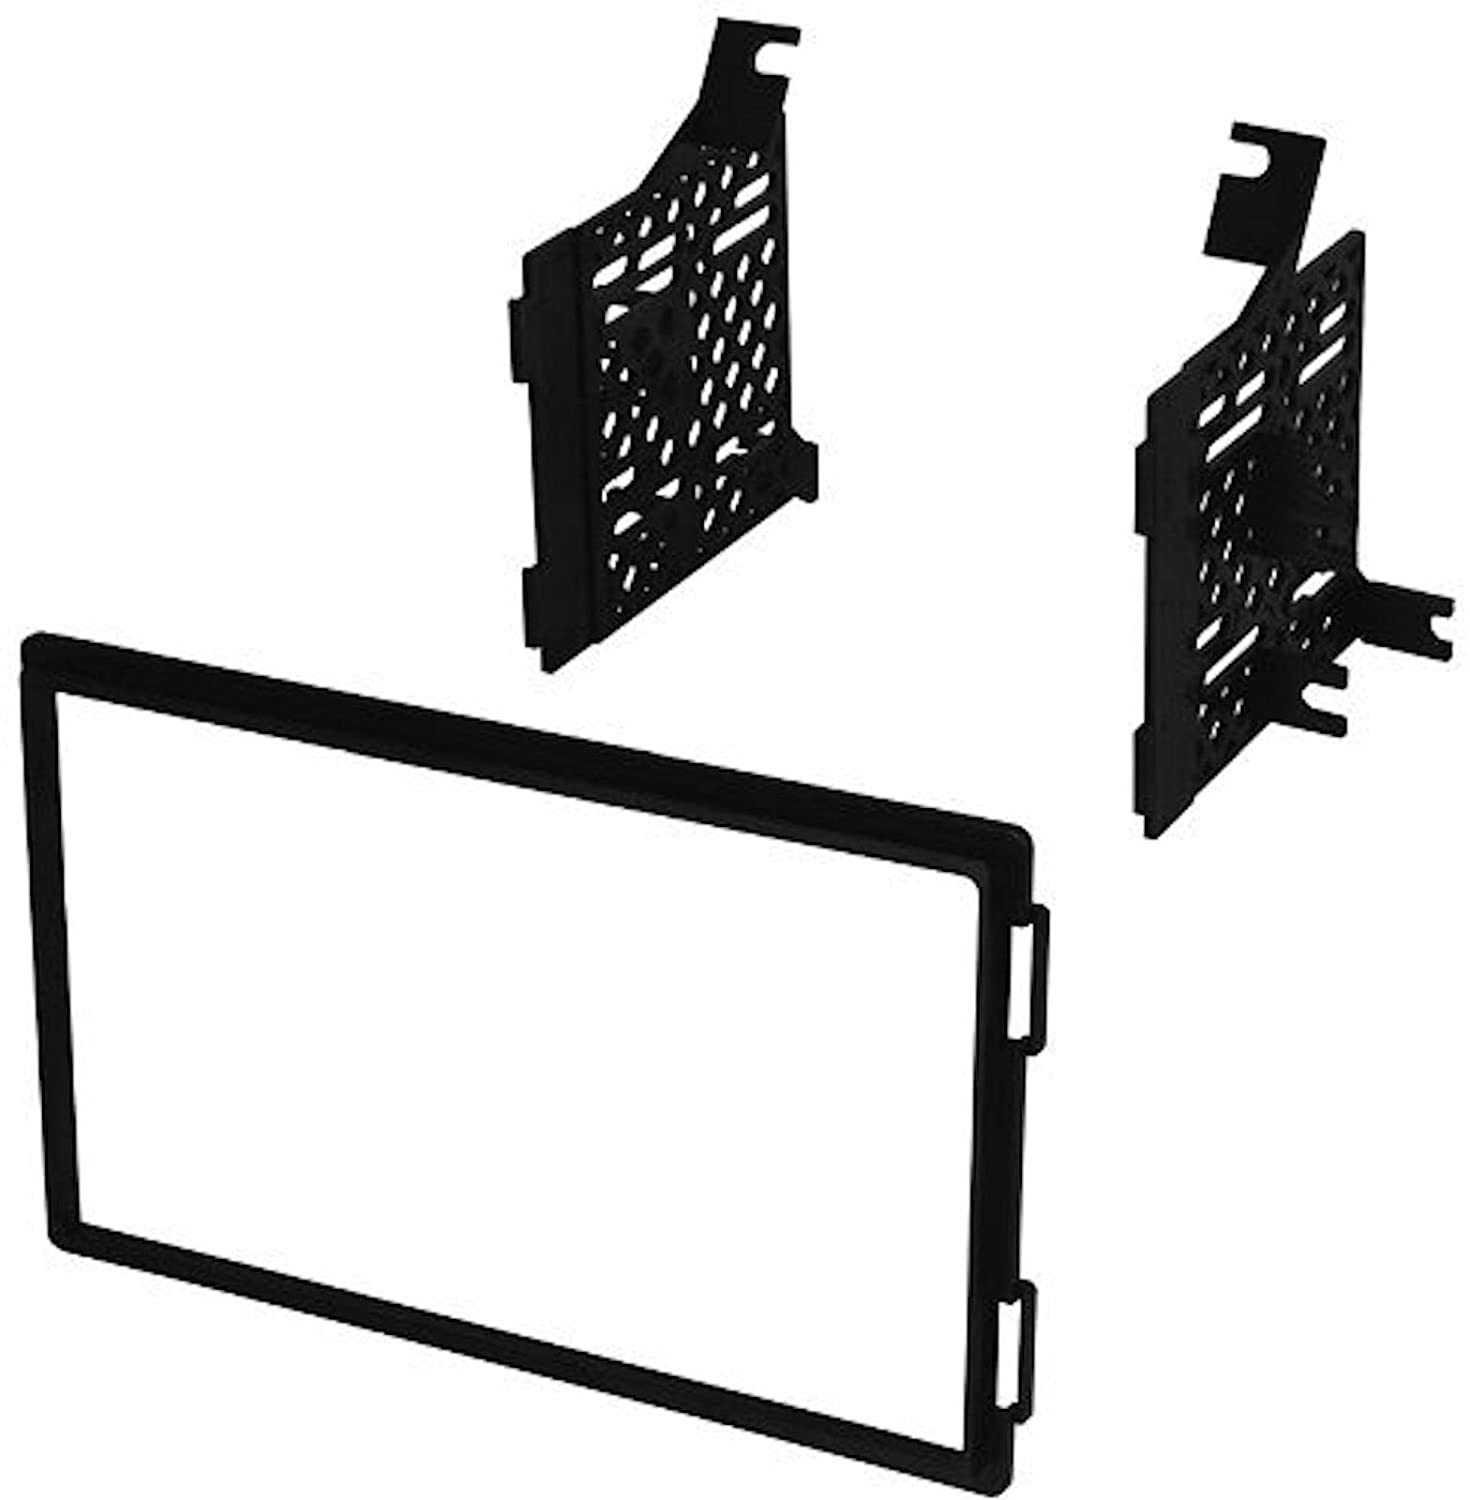 2005 2006 2007 2008 2009 2010 2011 2012 2013 2014 Nissan 350z Monitor Wiring Diagram Frontier Pathfinder Titan Xterra Double Din Dash Kit Install Automotive